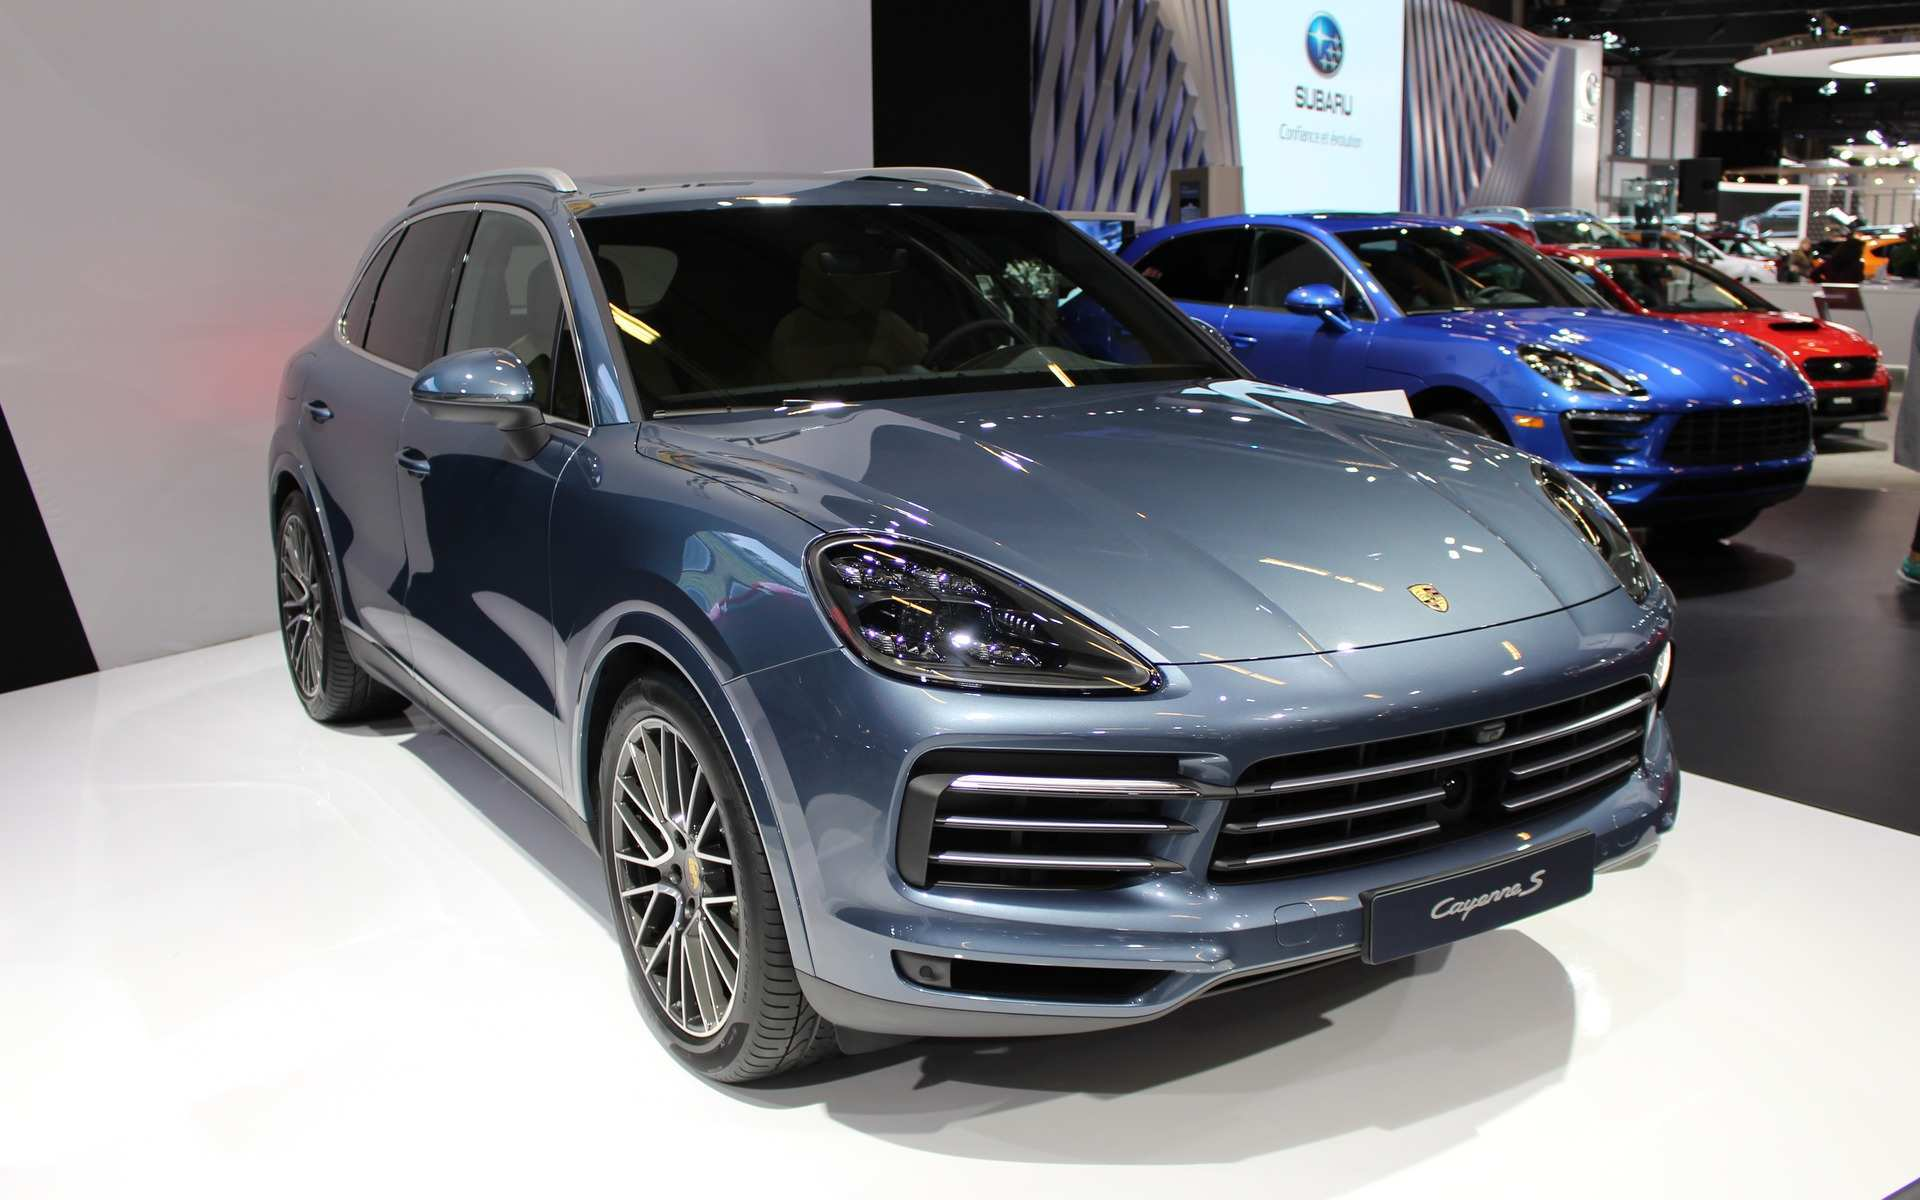 95 The 2019 Porsche Cayenne Model Review And Release Date